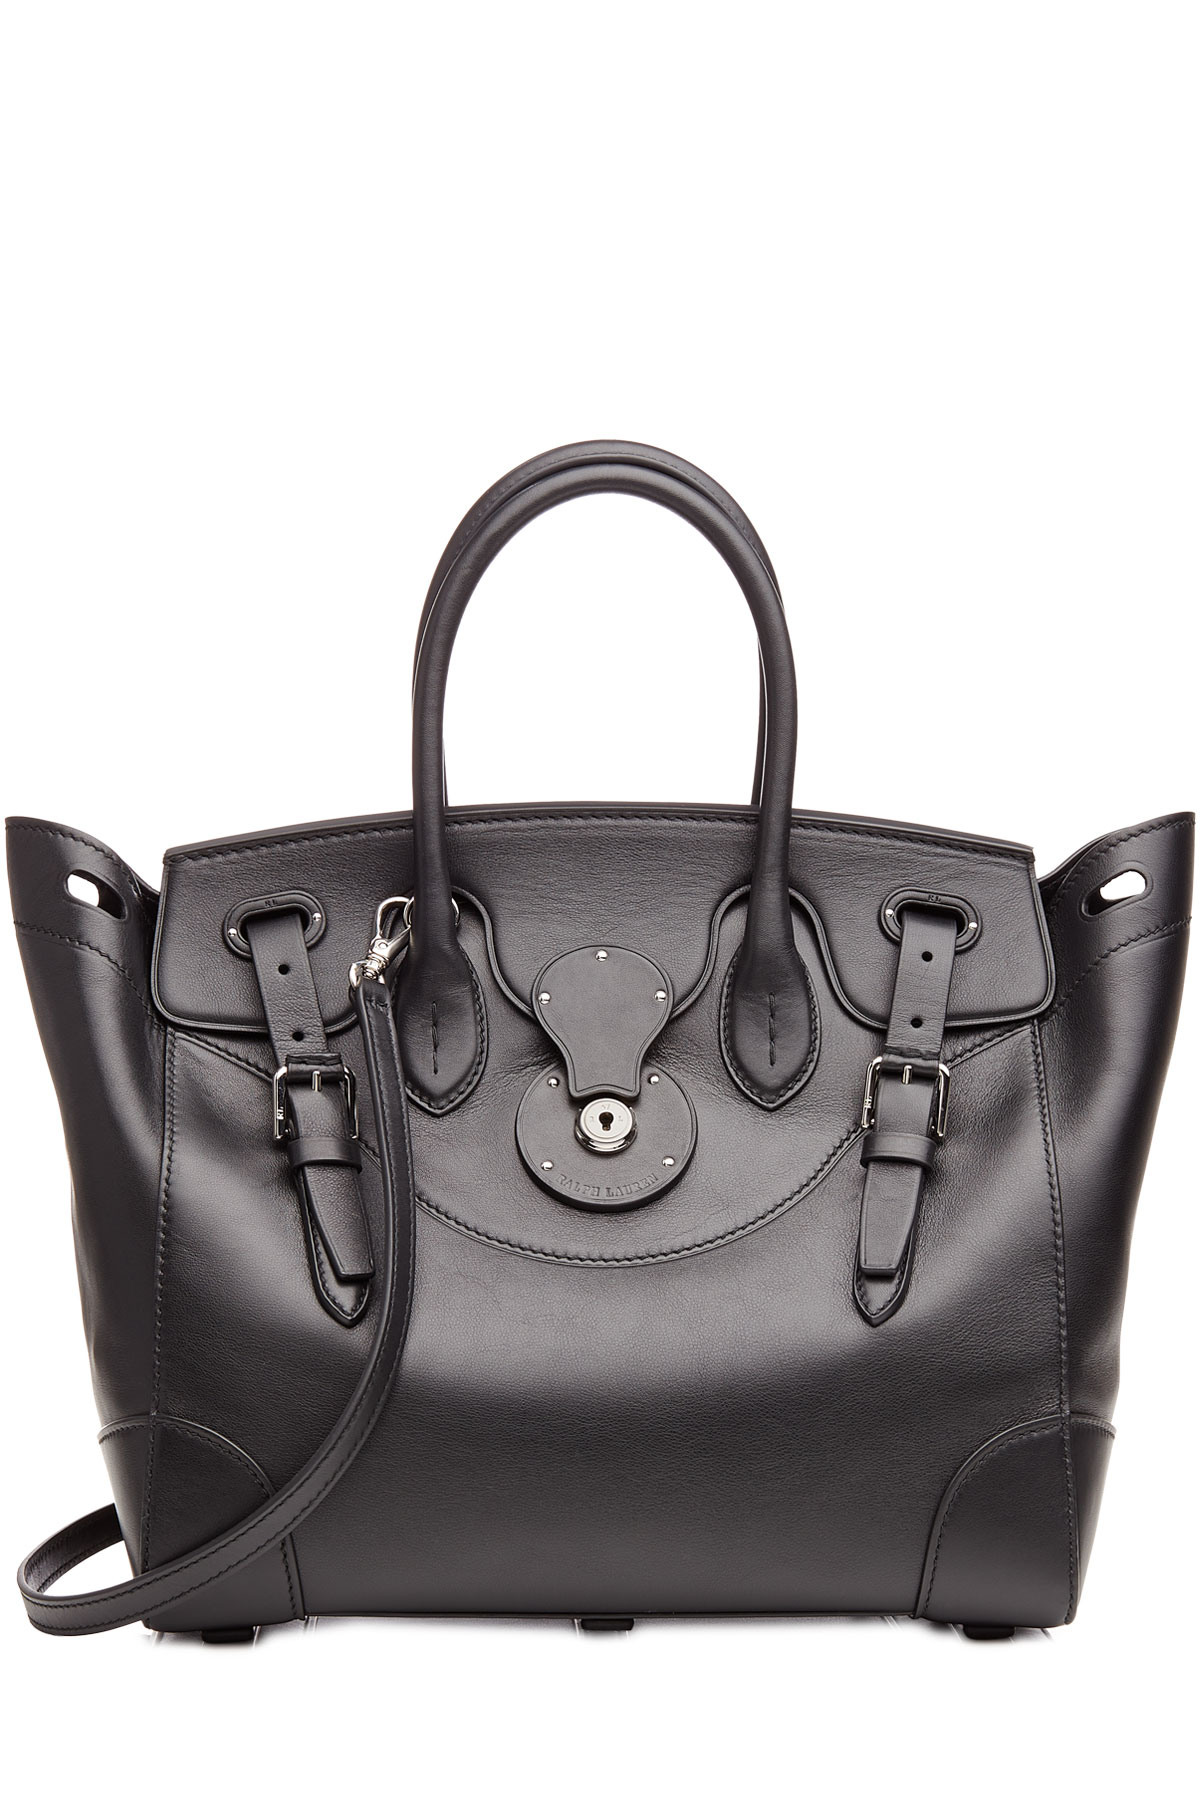 cf8fe0dbf4 Lyst - Ralph Lauren Collection Leather Soft Ricky Tote - Black in Black